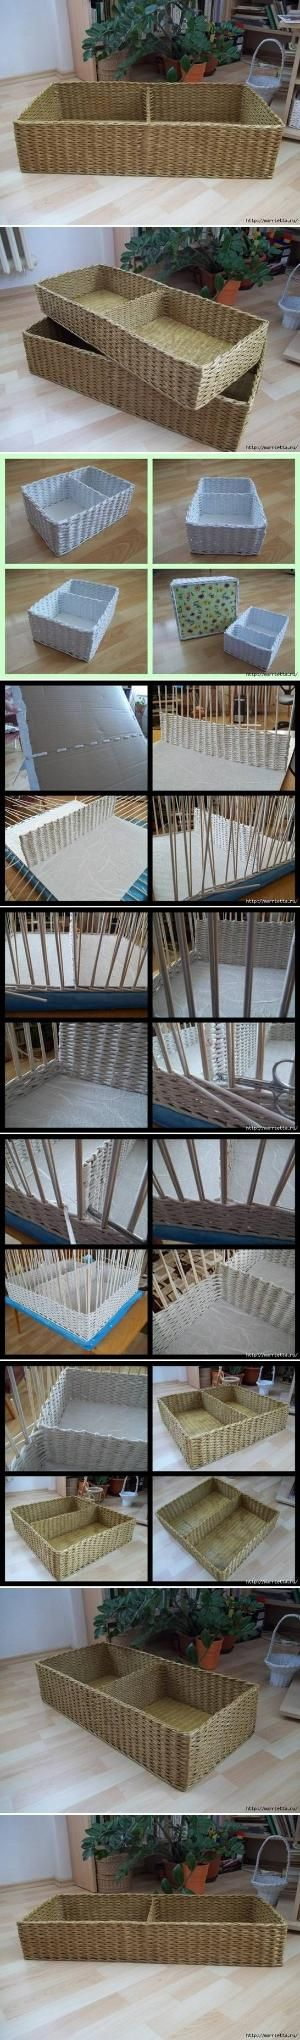 DIY Newspaper Basket with Compartments by sweet.dreams